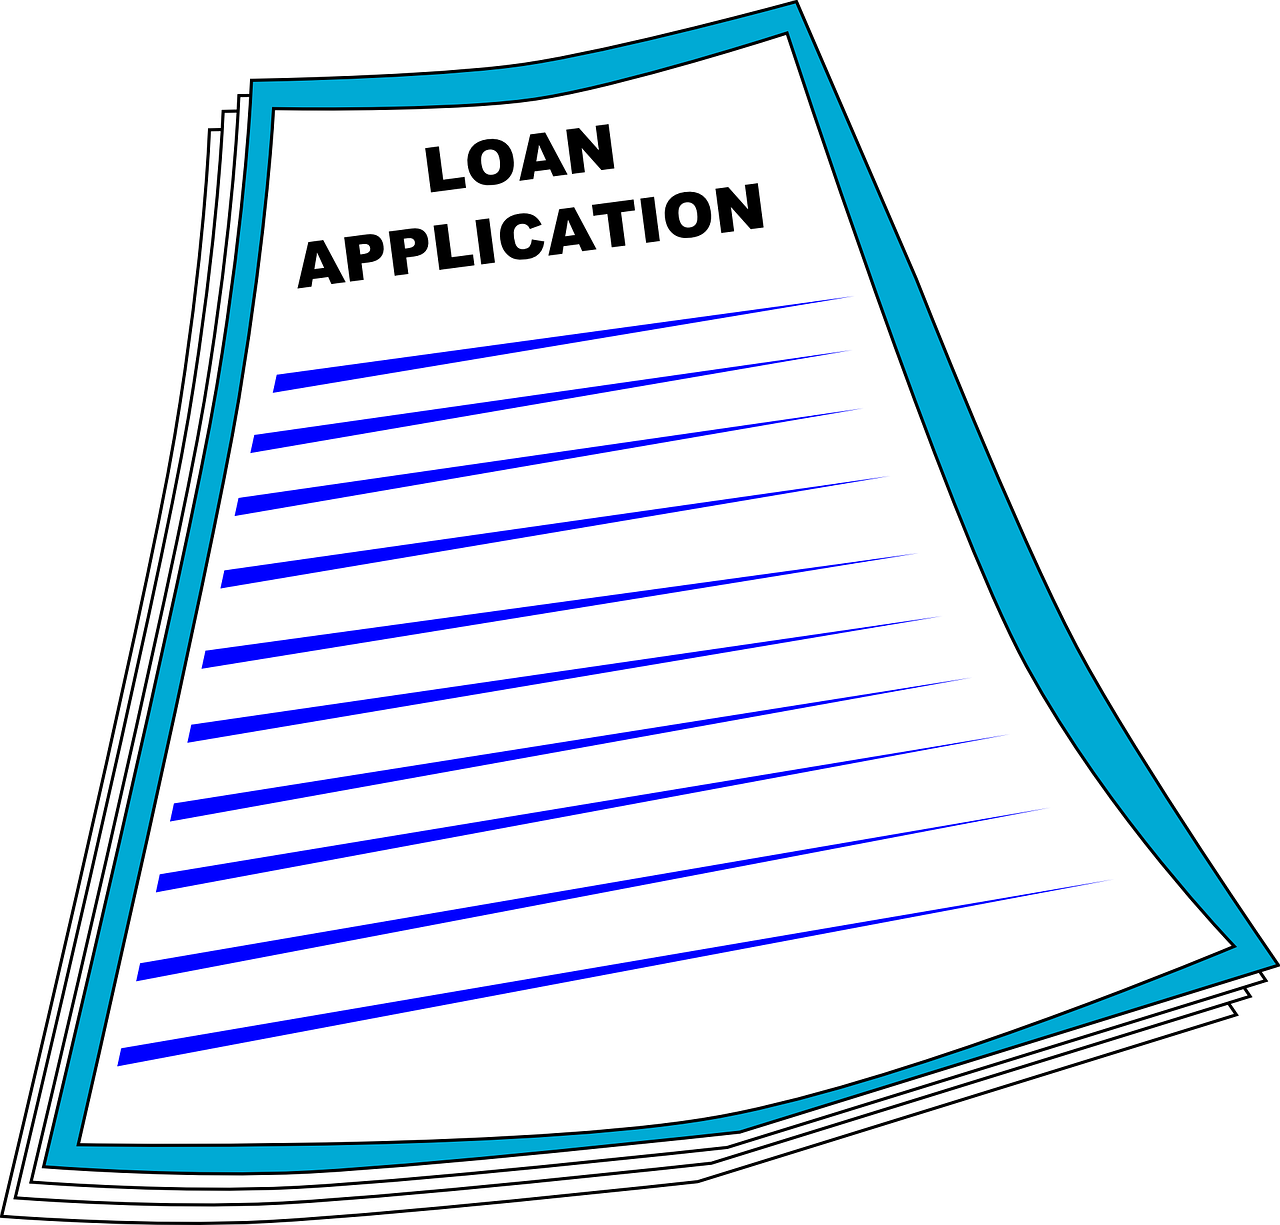 New way of funding - loan